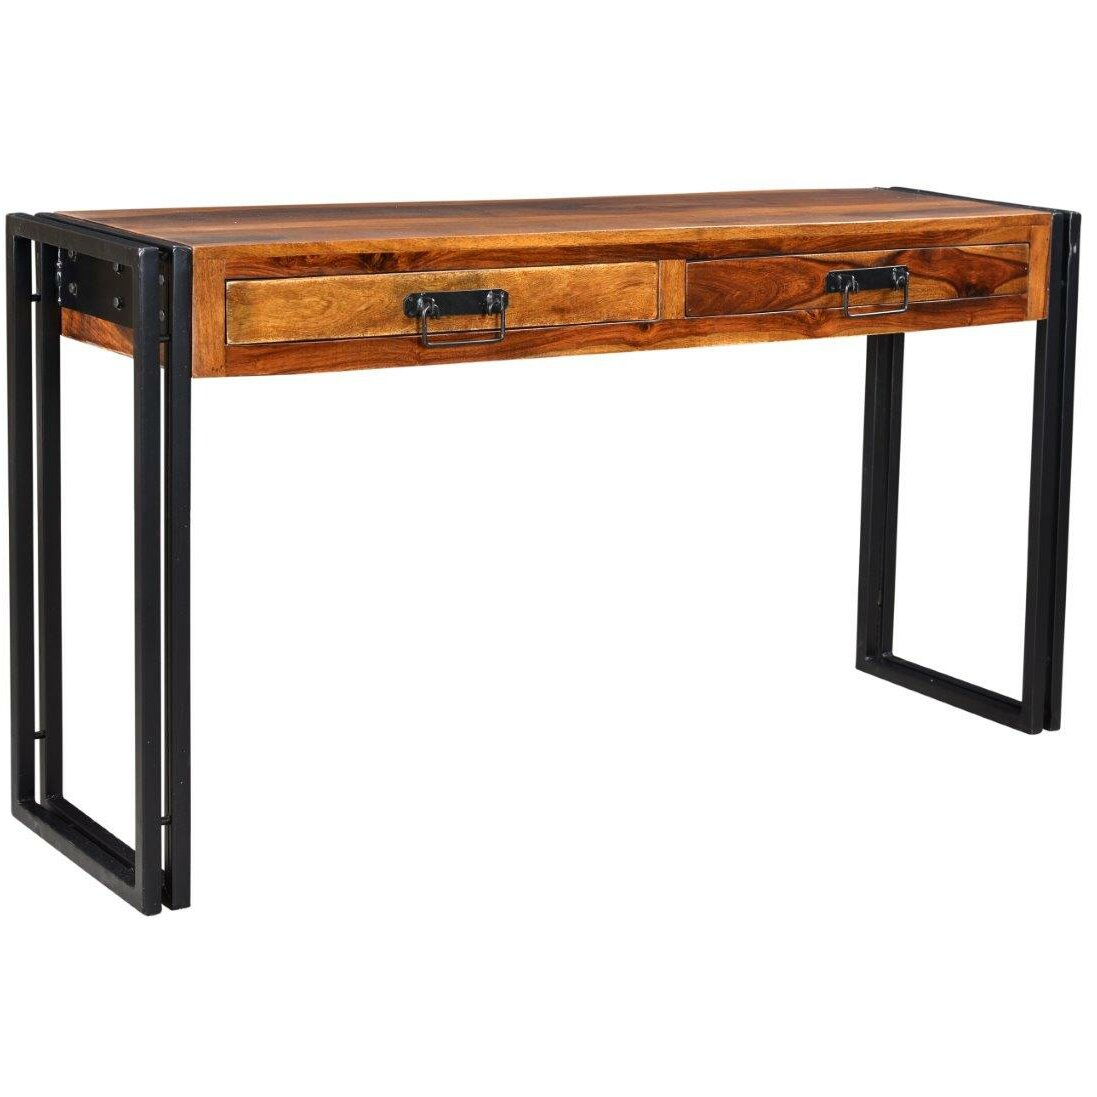 Where To Buy Dining Room Table Timbergirl Industrial Console Table Wayfair